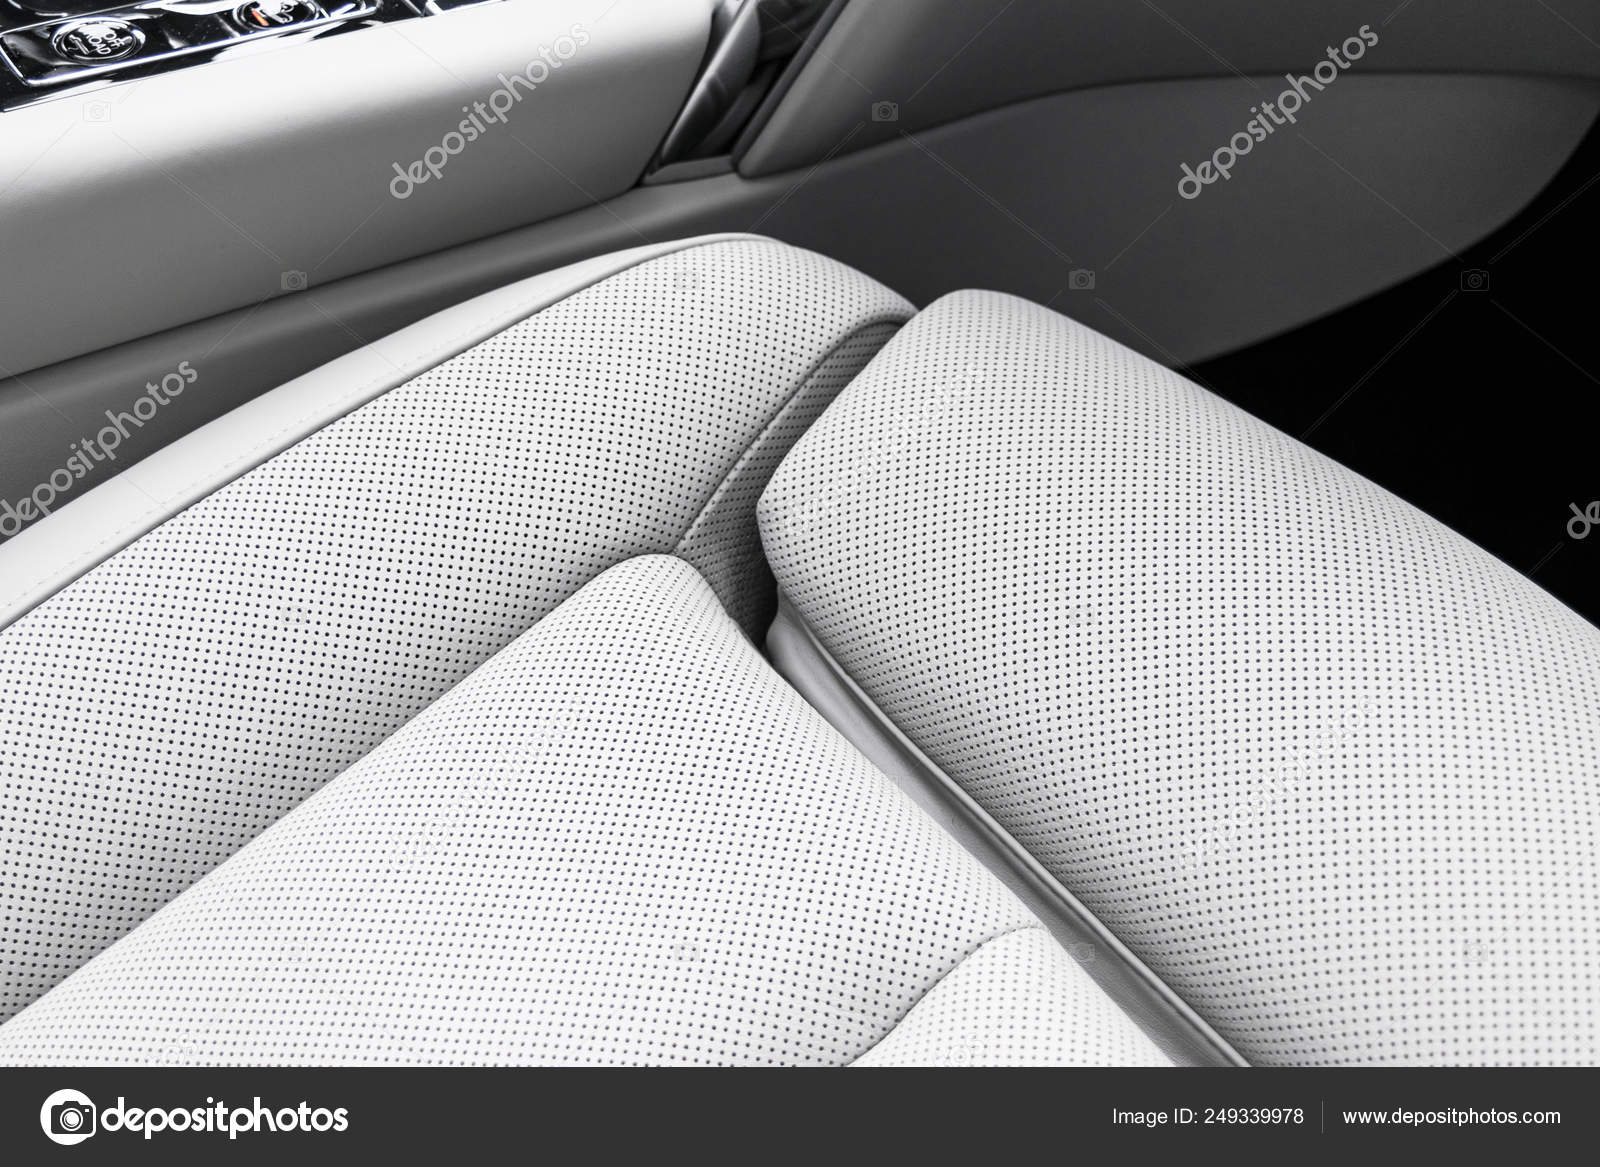 Modern Luxury Car White Leather Interior With Natural Wood Panel Part Of Leather Car Seat Details With Stitching Interior Of Prestige Modern Car White Perforated Leather Car Detailing Car Inside Stock